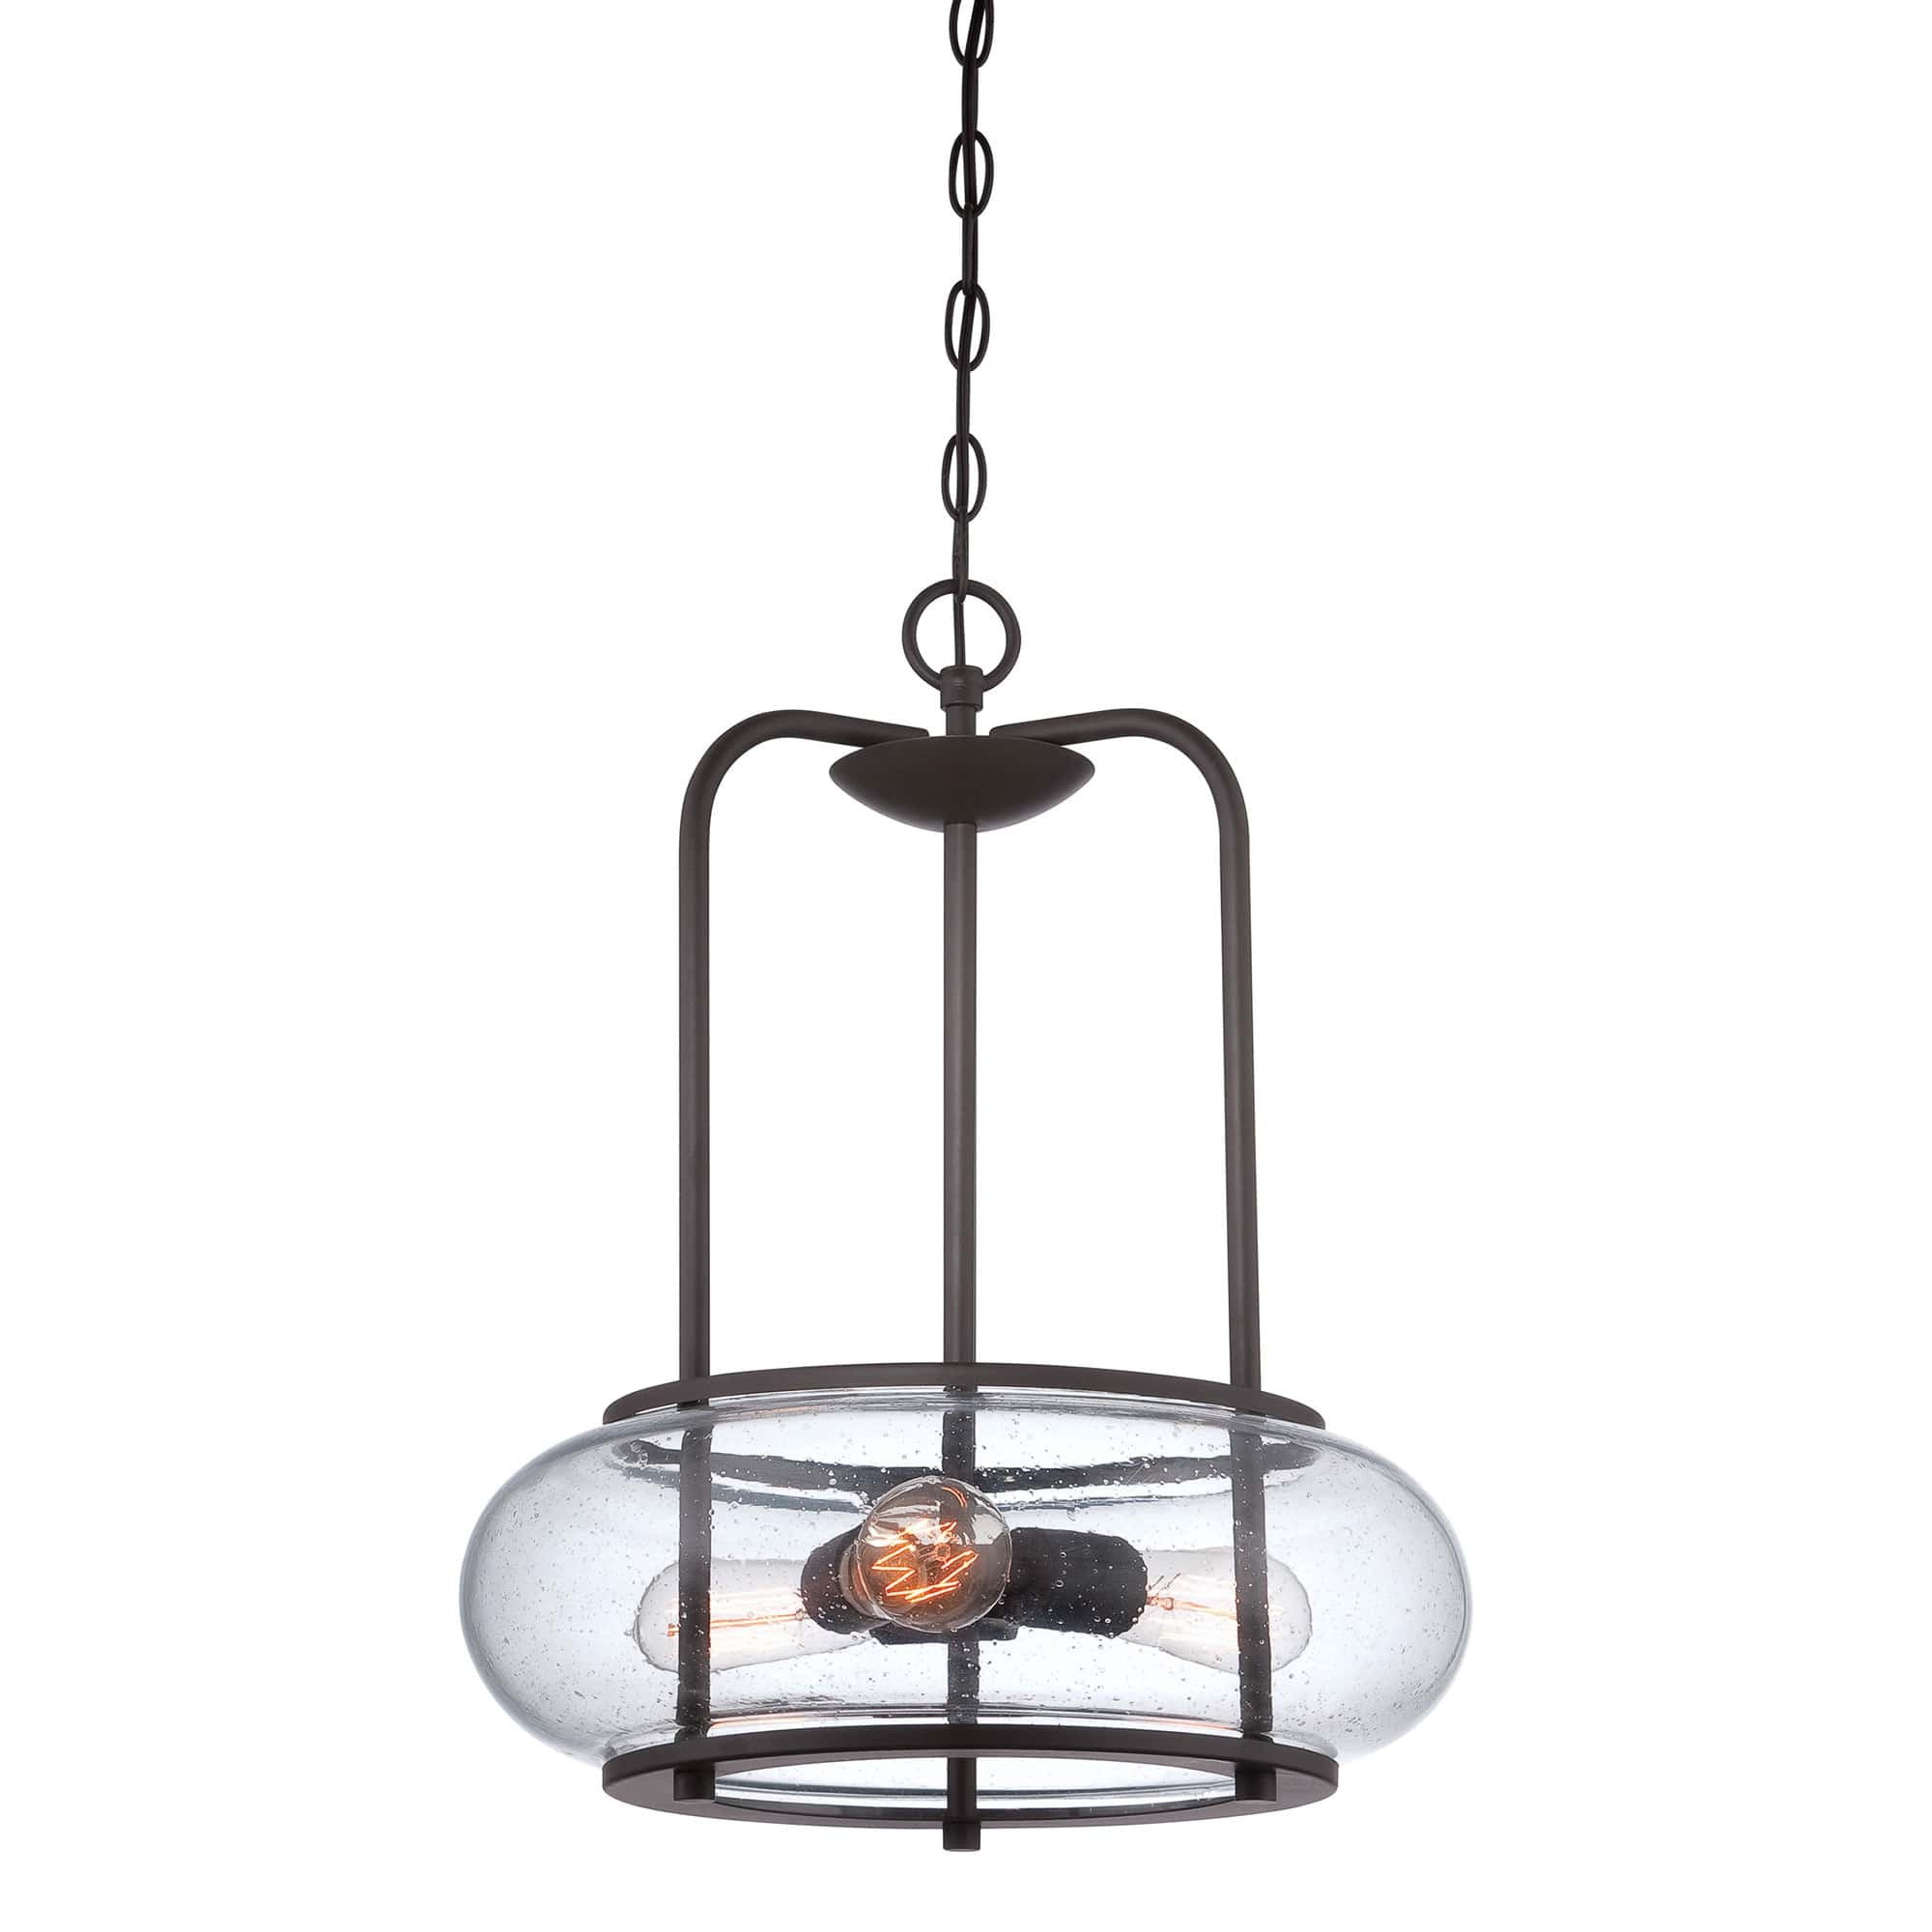 pendant by carl glass orrefors for fagerlund